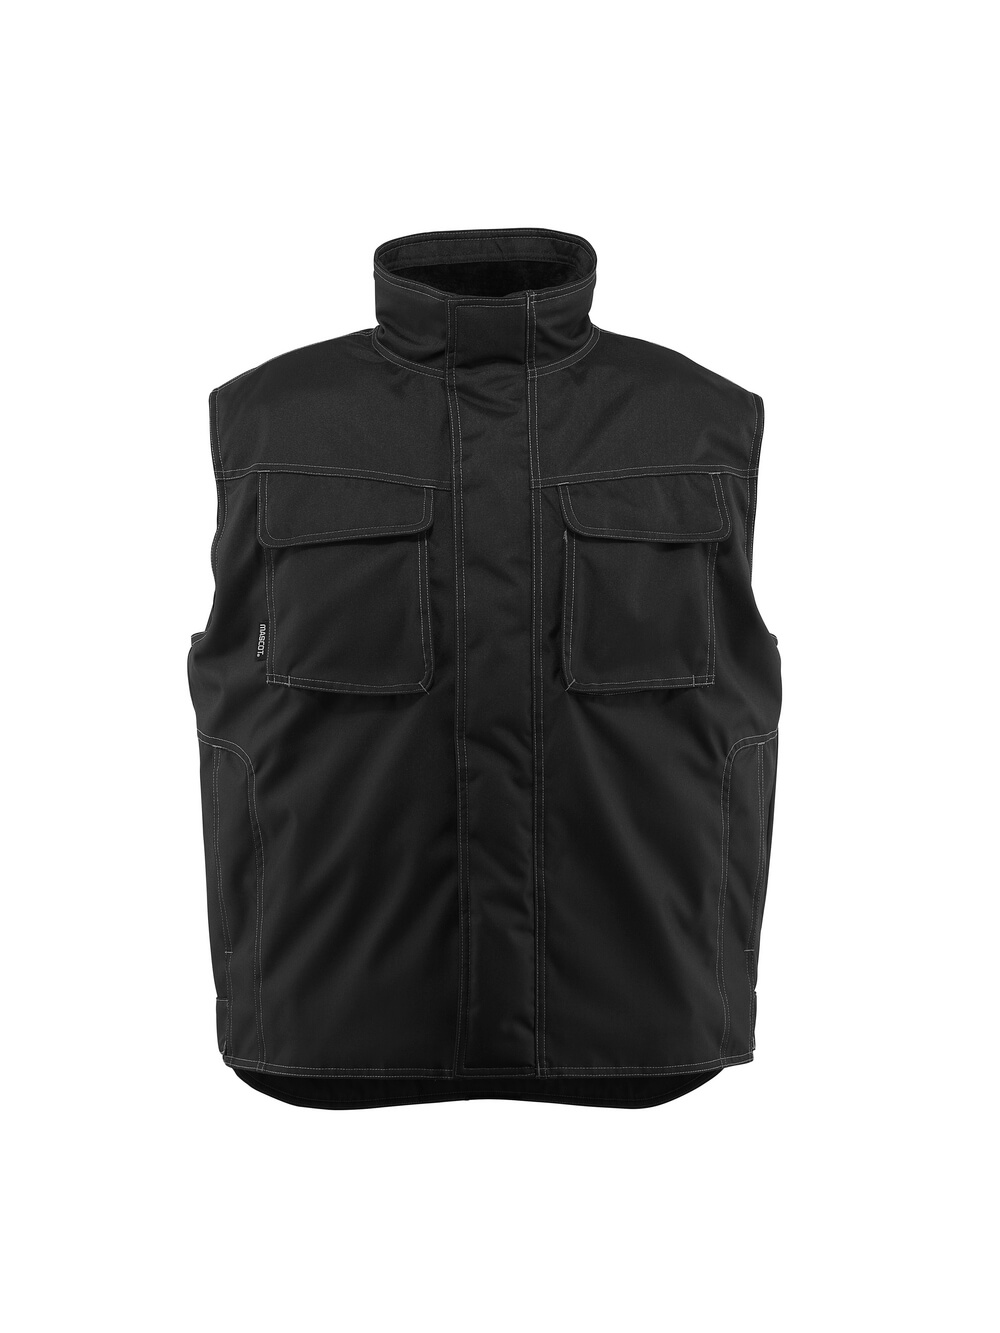 10054-194-09 Winter Gilet - black